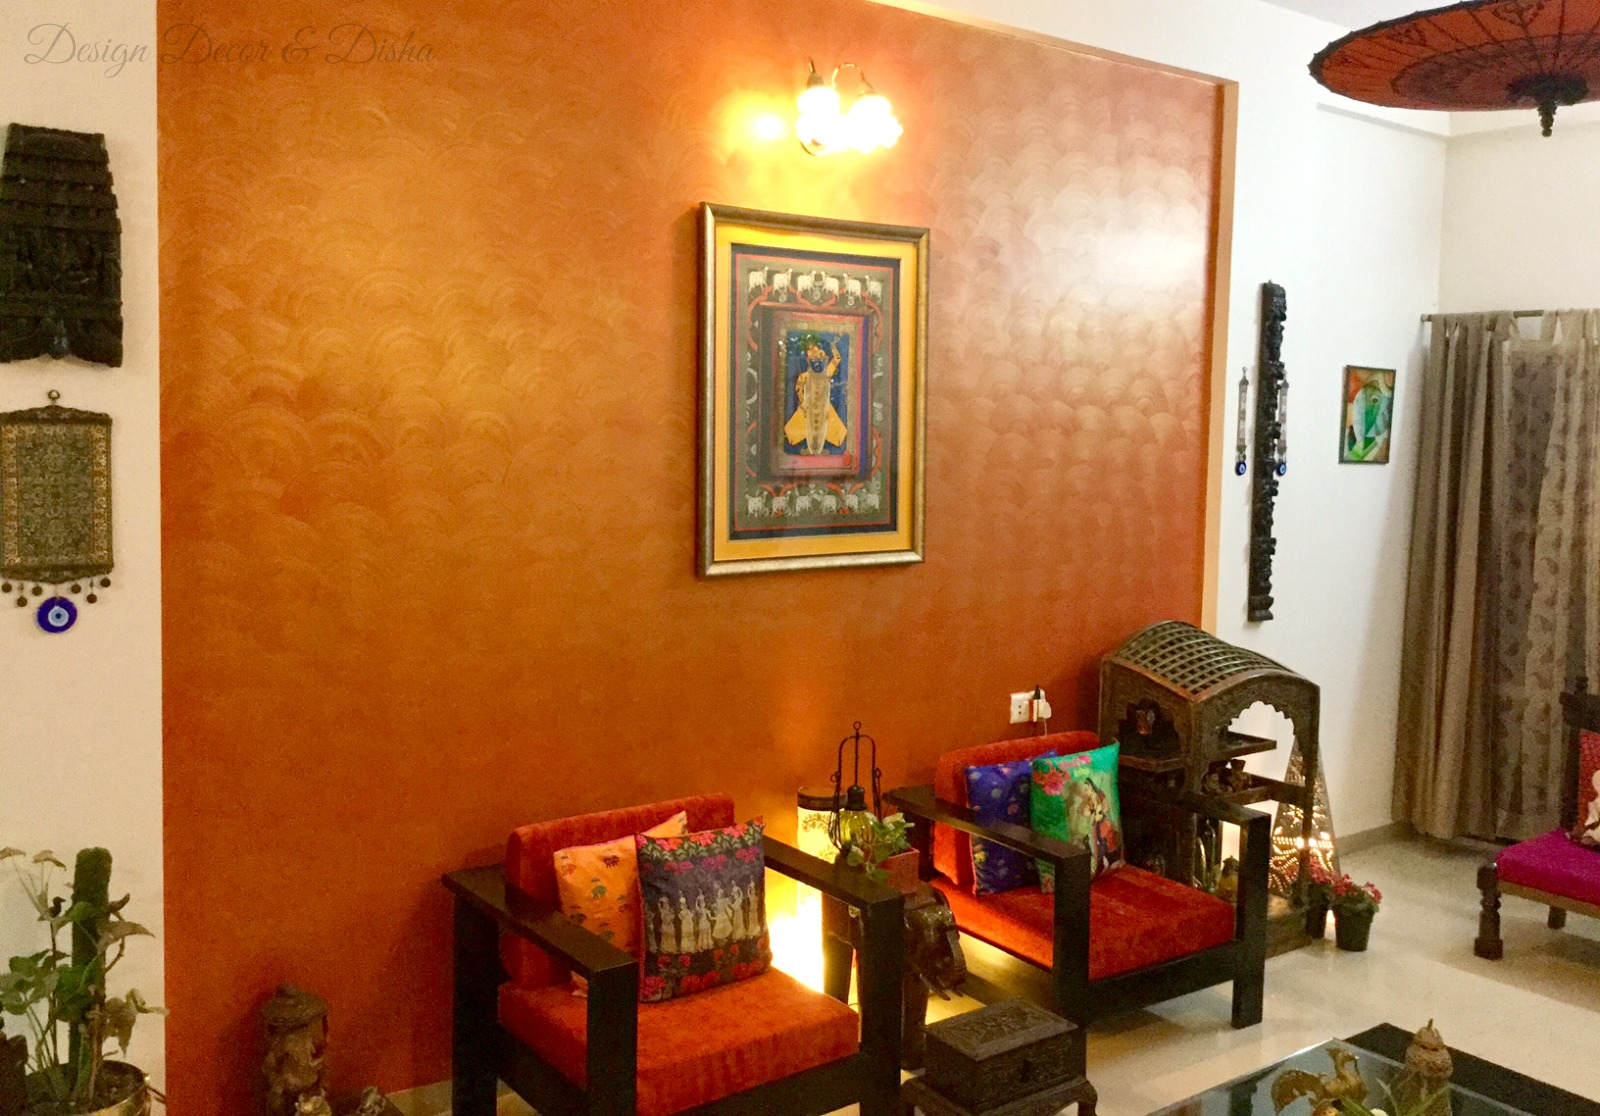 Design Decor & Disha | An Indian Design & Decor Blog: Wall ...